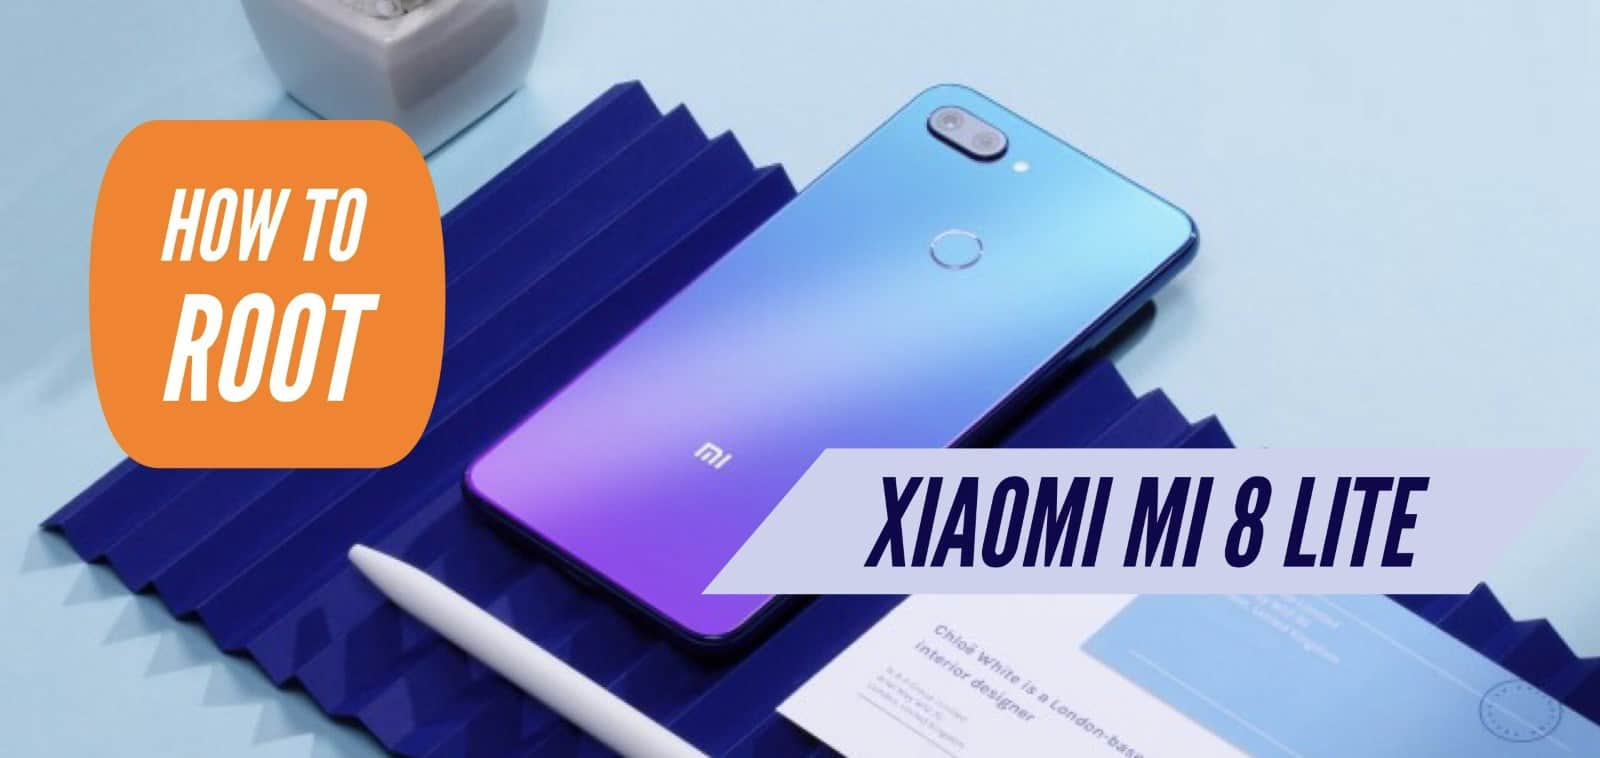 How to Root Xiaomi Mi 8 Lite Flash TWRP Recovery